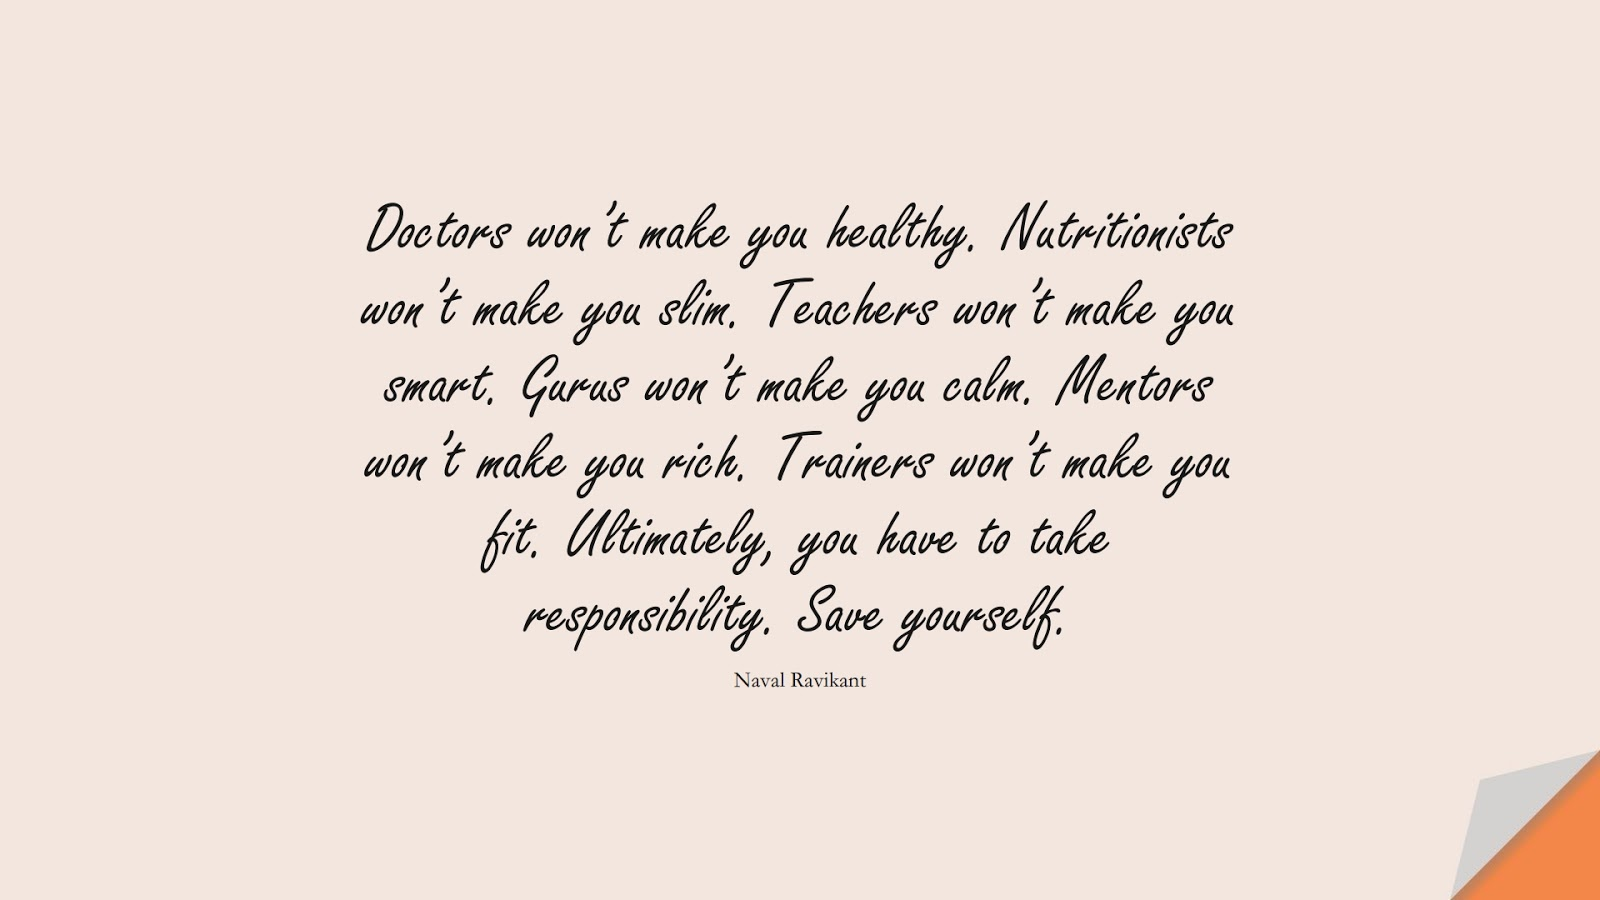 Doctors won't make you healthy. Nutritionists won't make you slim. Teachers won't make you smart. Gurus won't make you calm. Mentors won't make you rich. Trainers won't make you fit. Ultimately, you have to take responsibility. Save yourself. (Naval Ravikant);  #CalmQuotes